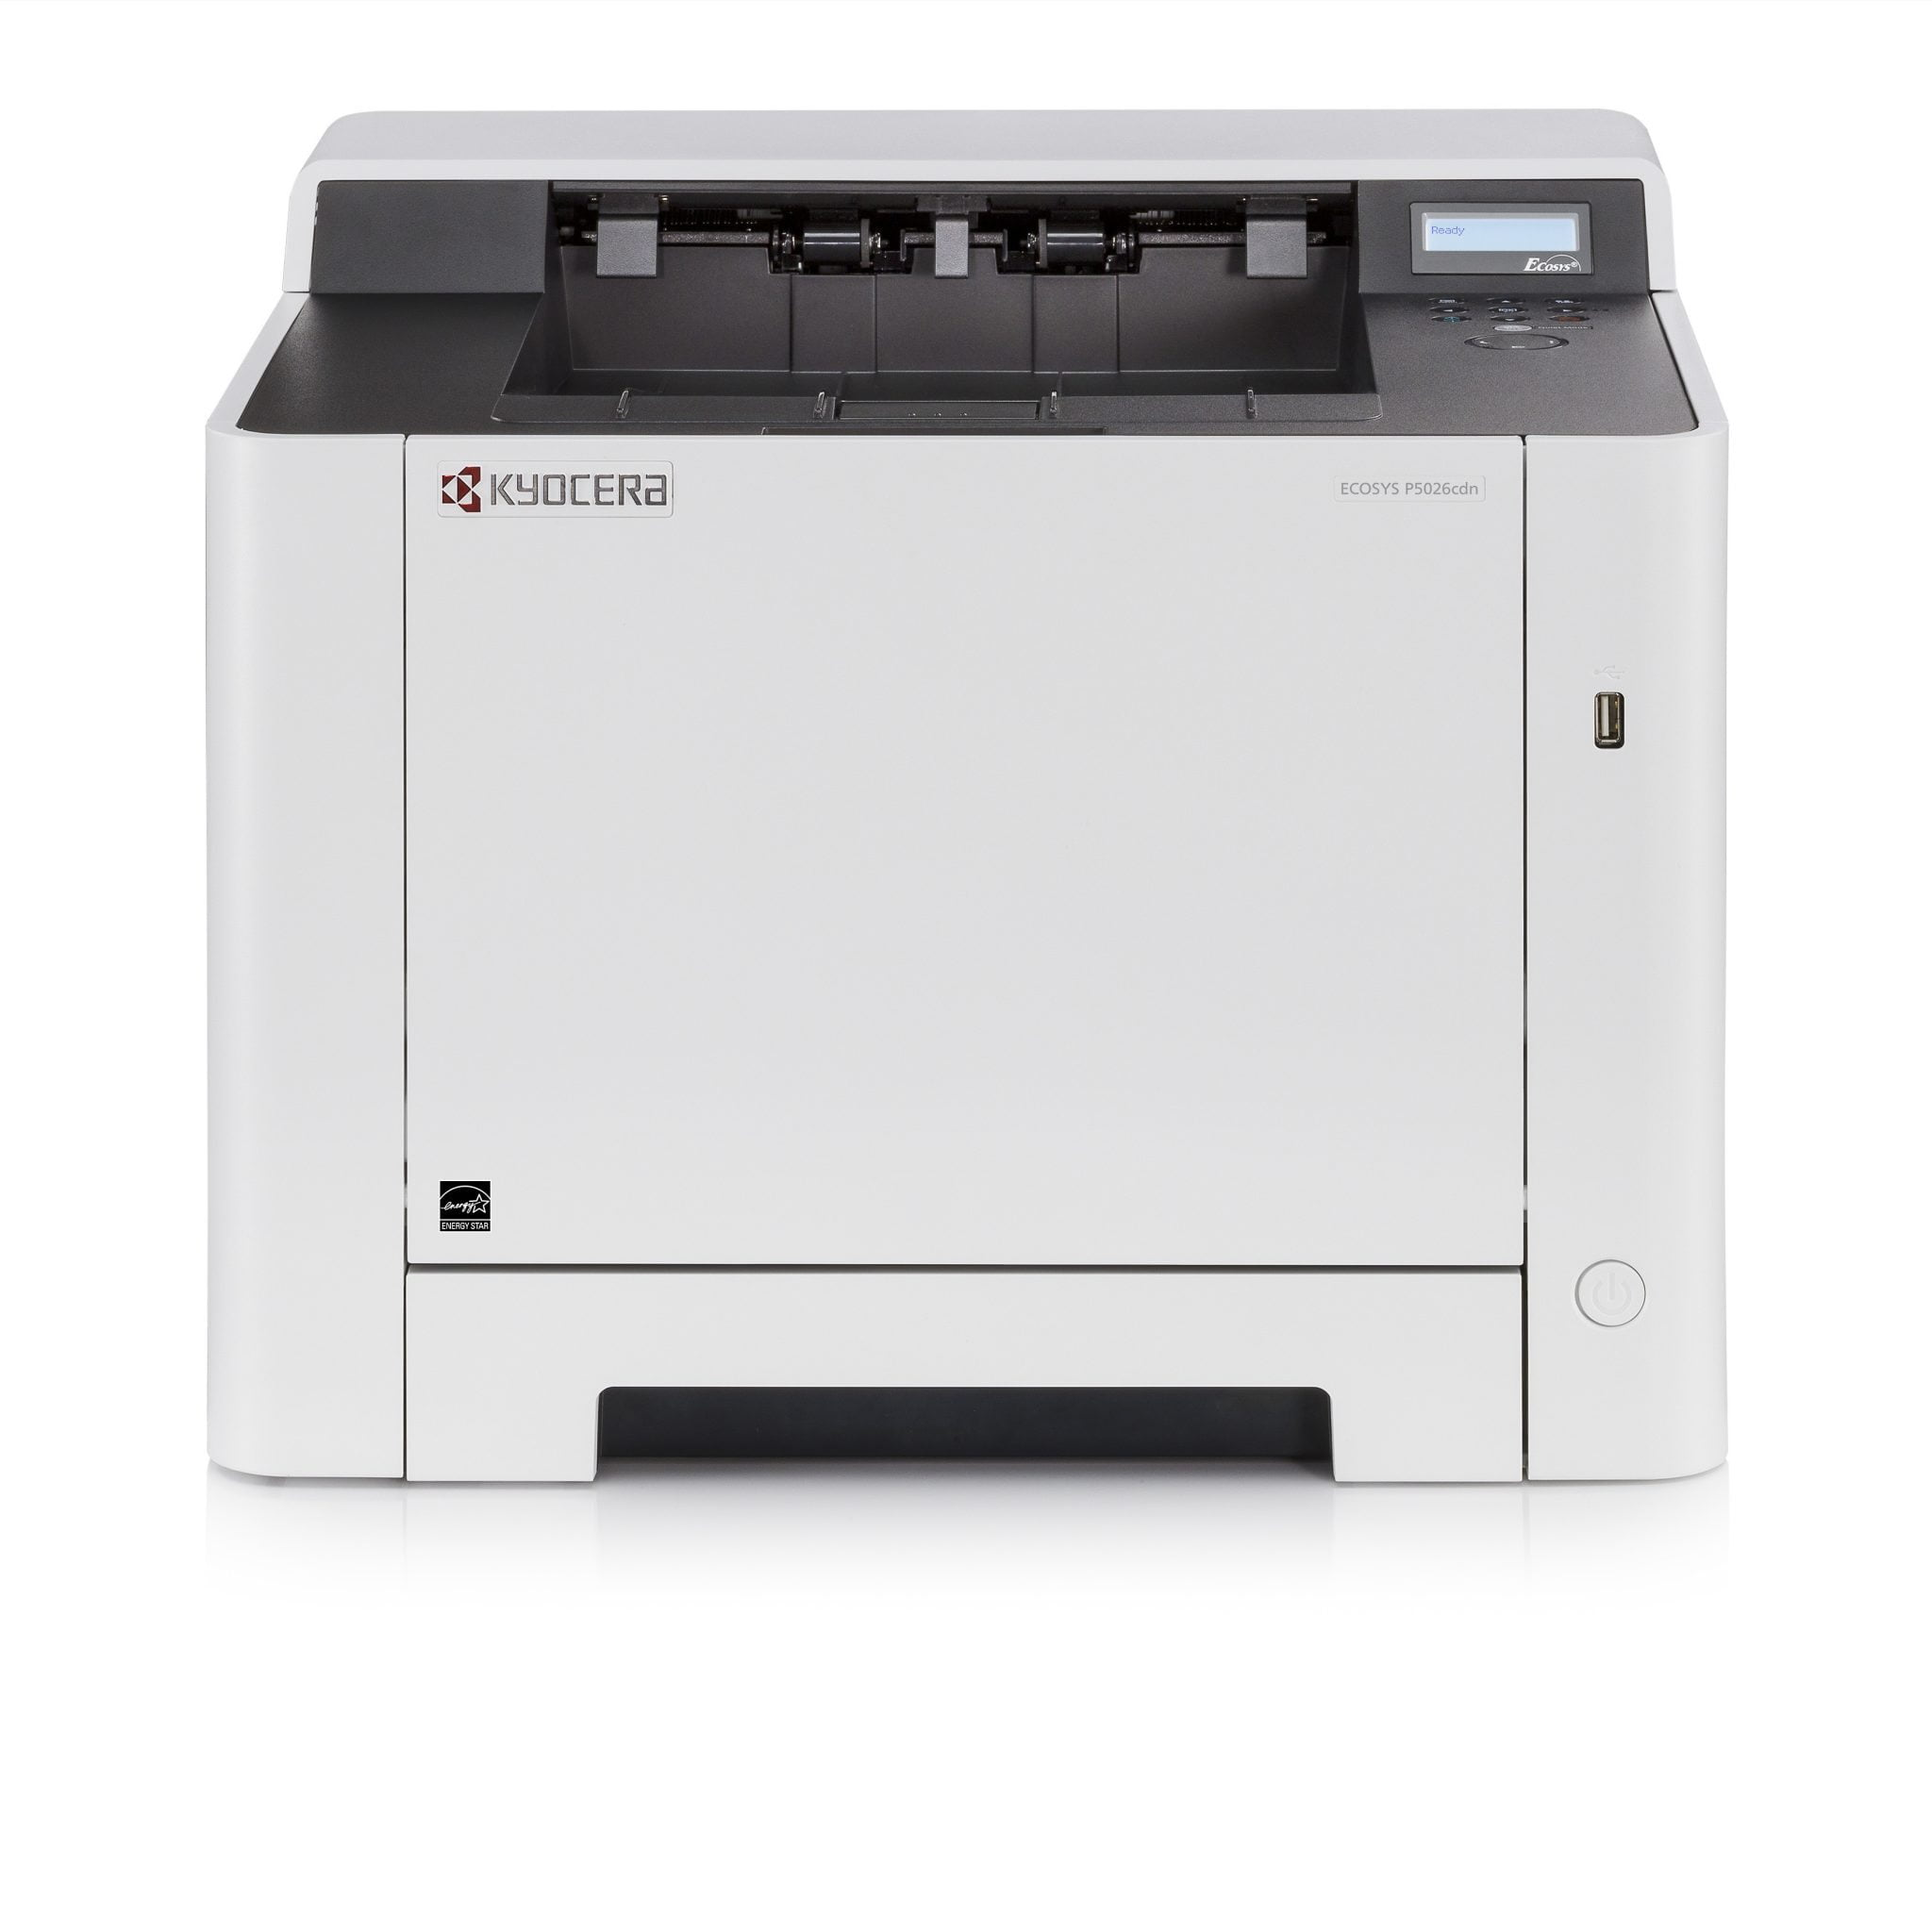 Kyocera ECOSYS P5026cdw Colour Laser Printer with Wi-fi